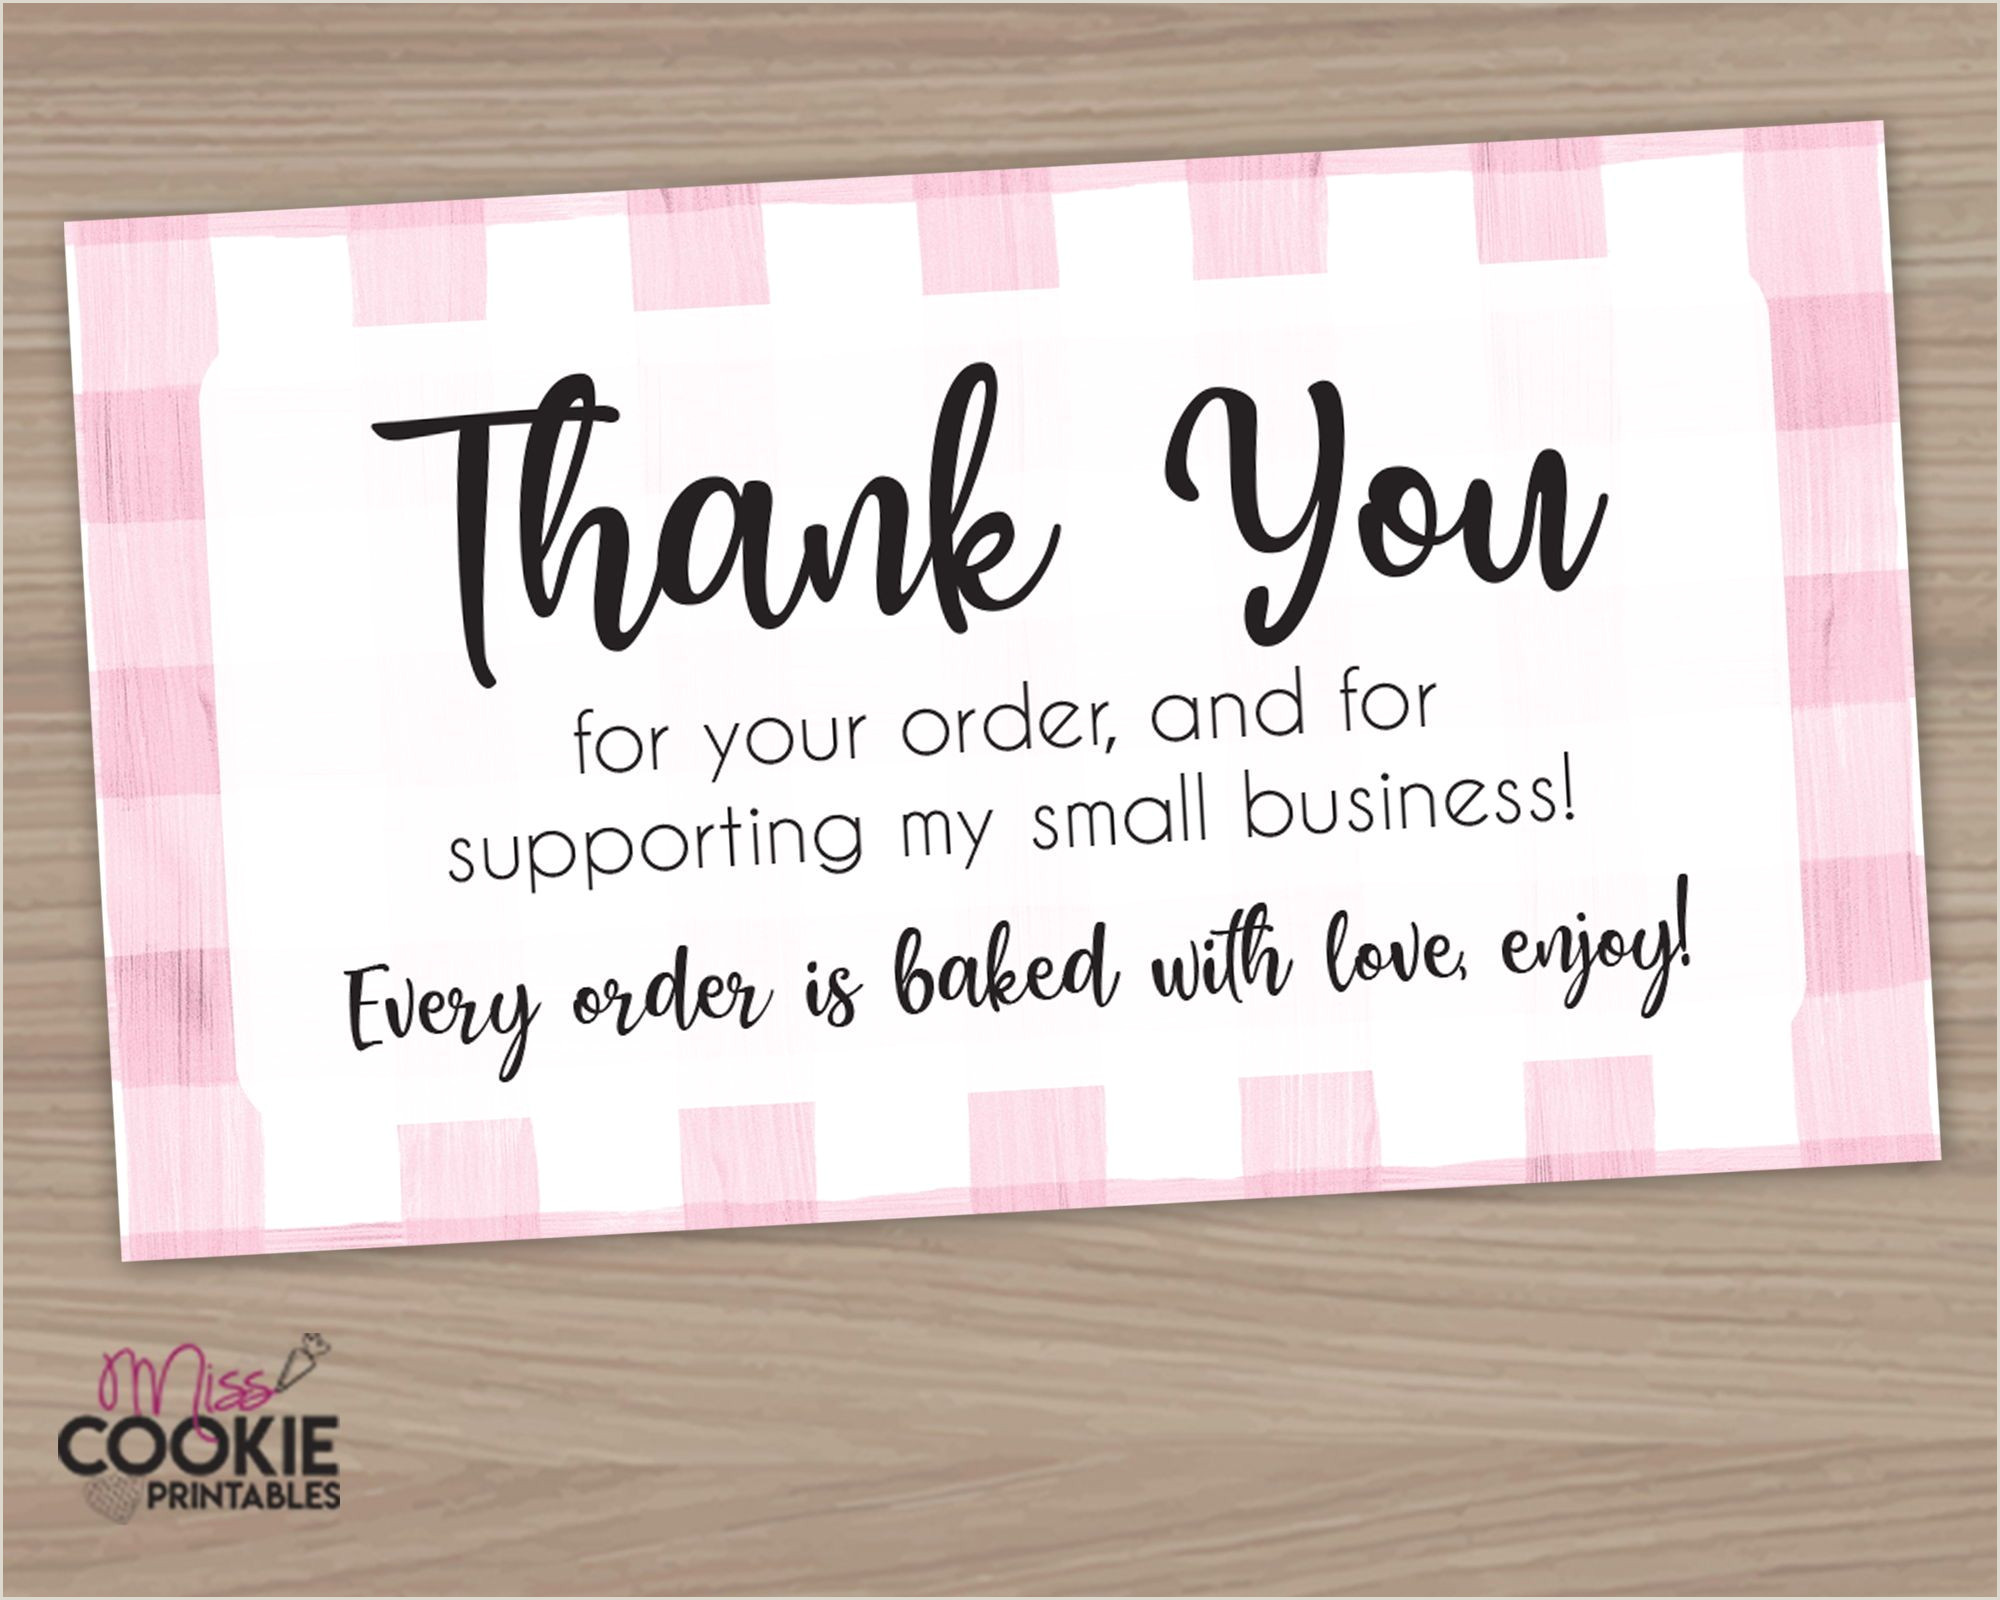 Thank You Card Designs Ideas Printable Thank You For Your Order And For Supporting My